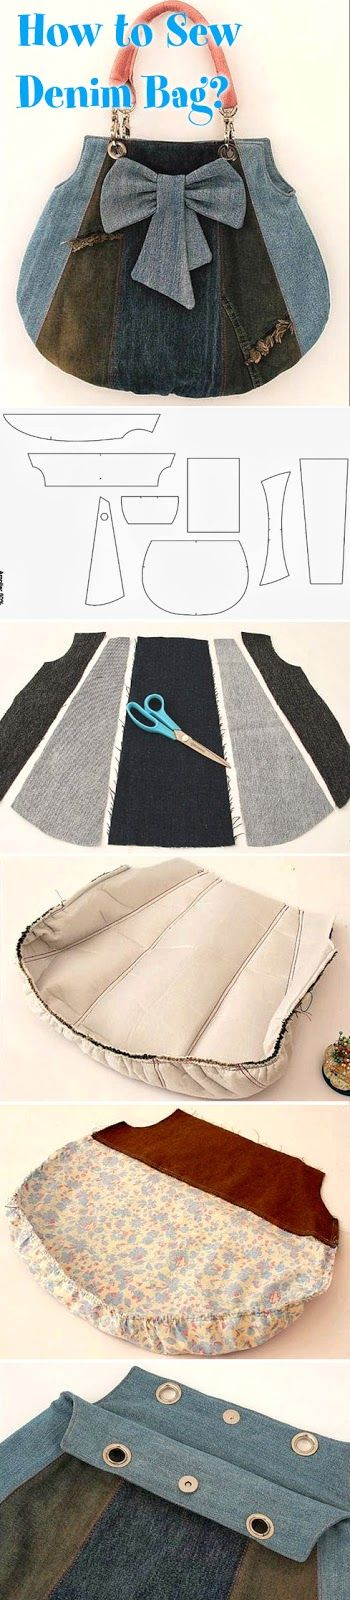 How to Sew Denim Bag? DIY tutorial…